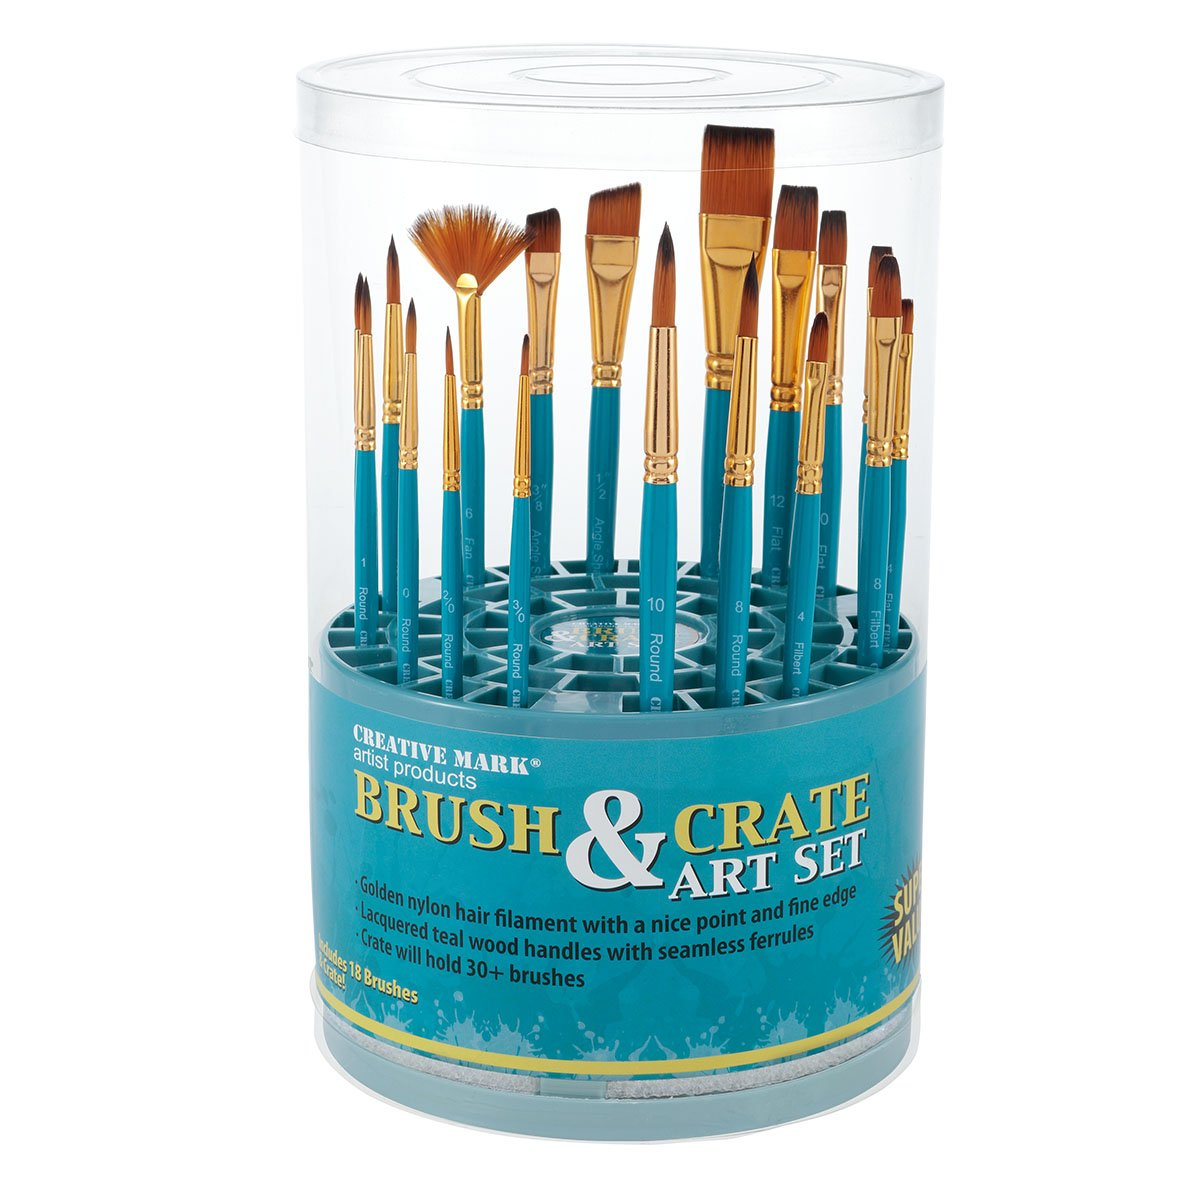 Artist Paintbrush Set - 18pc Professional Quality Short Handle Paint Brushes for Acrylic, Oil, Craft, Hobby Painting with Multi-Use Crate Organizer by Creative Mark